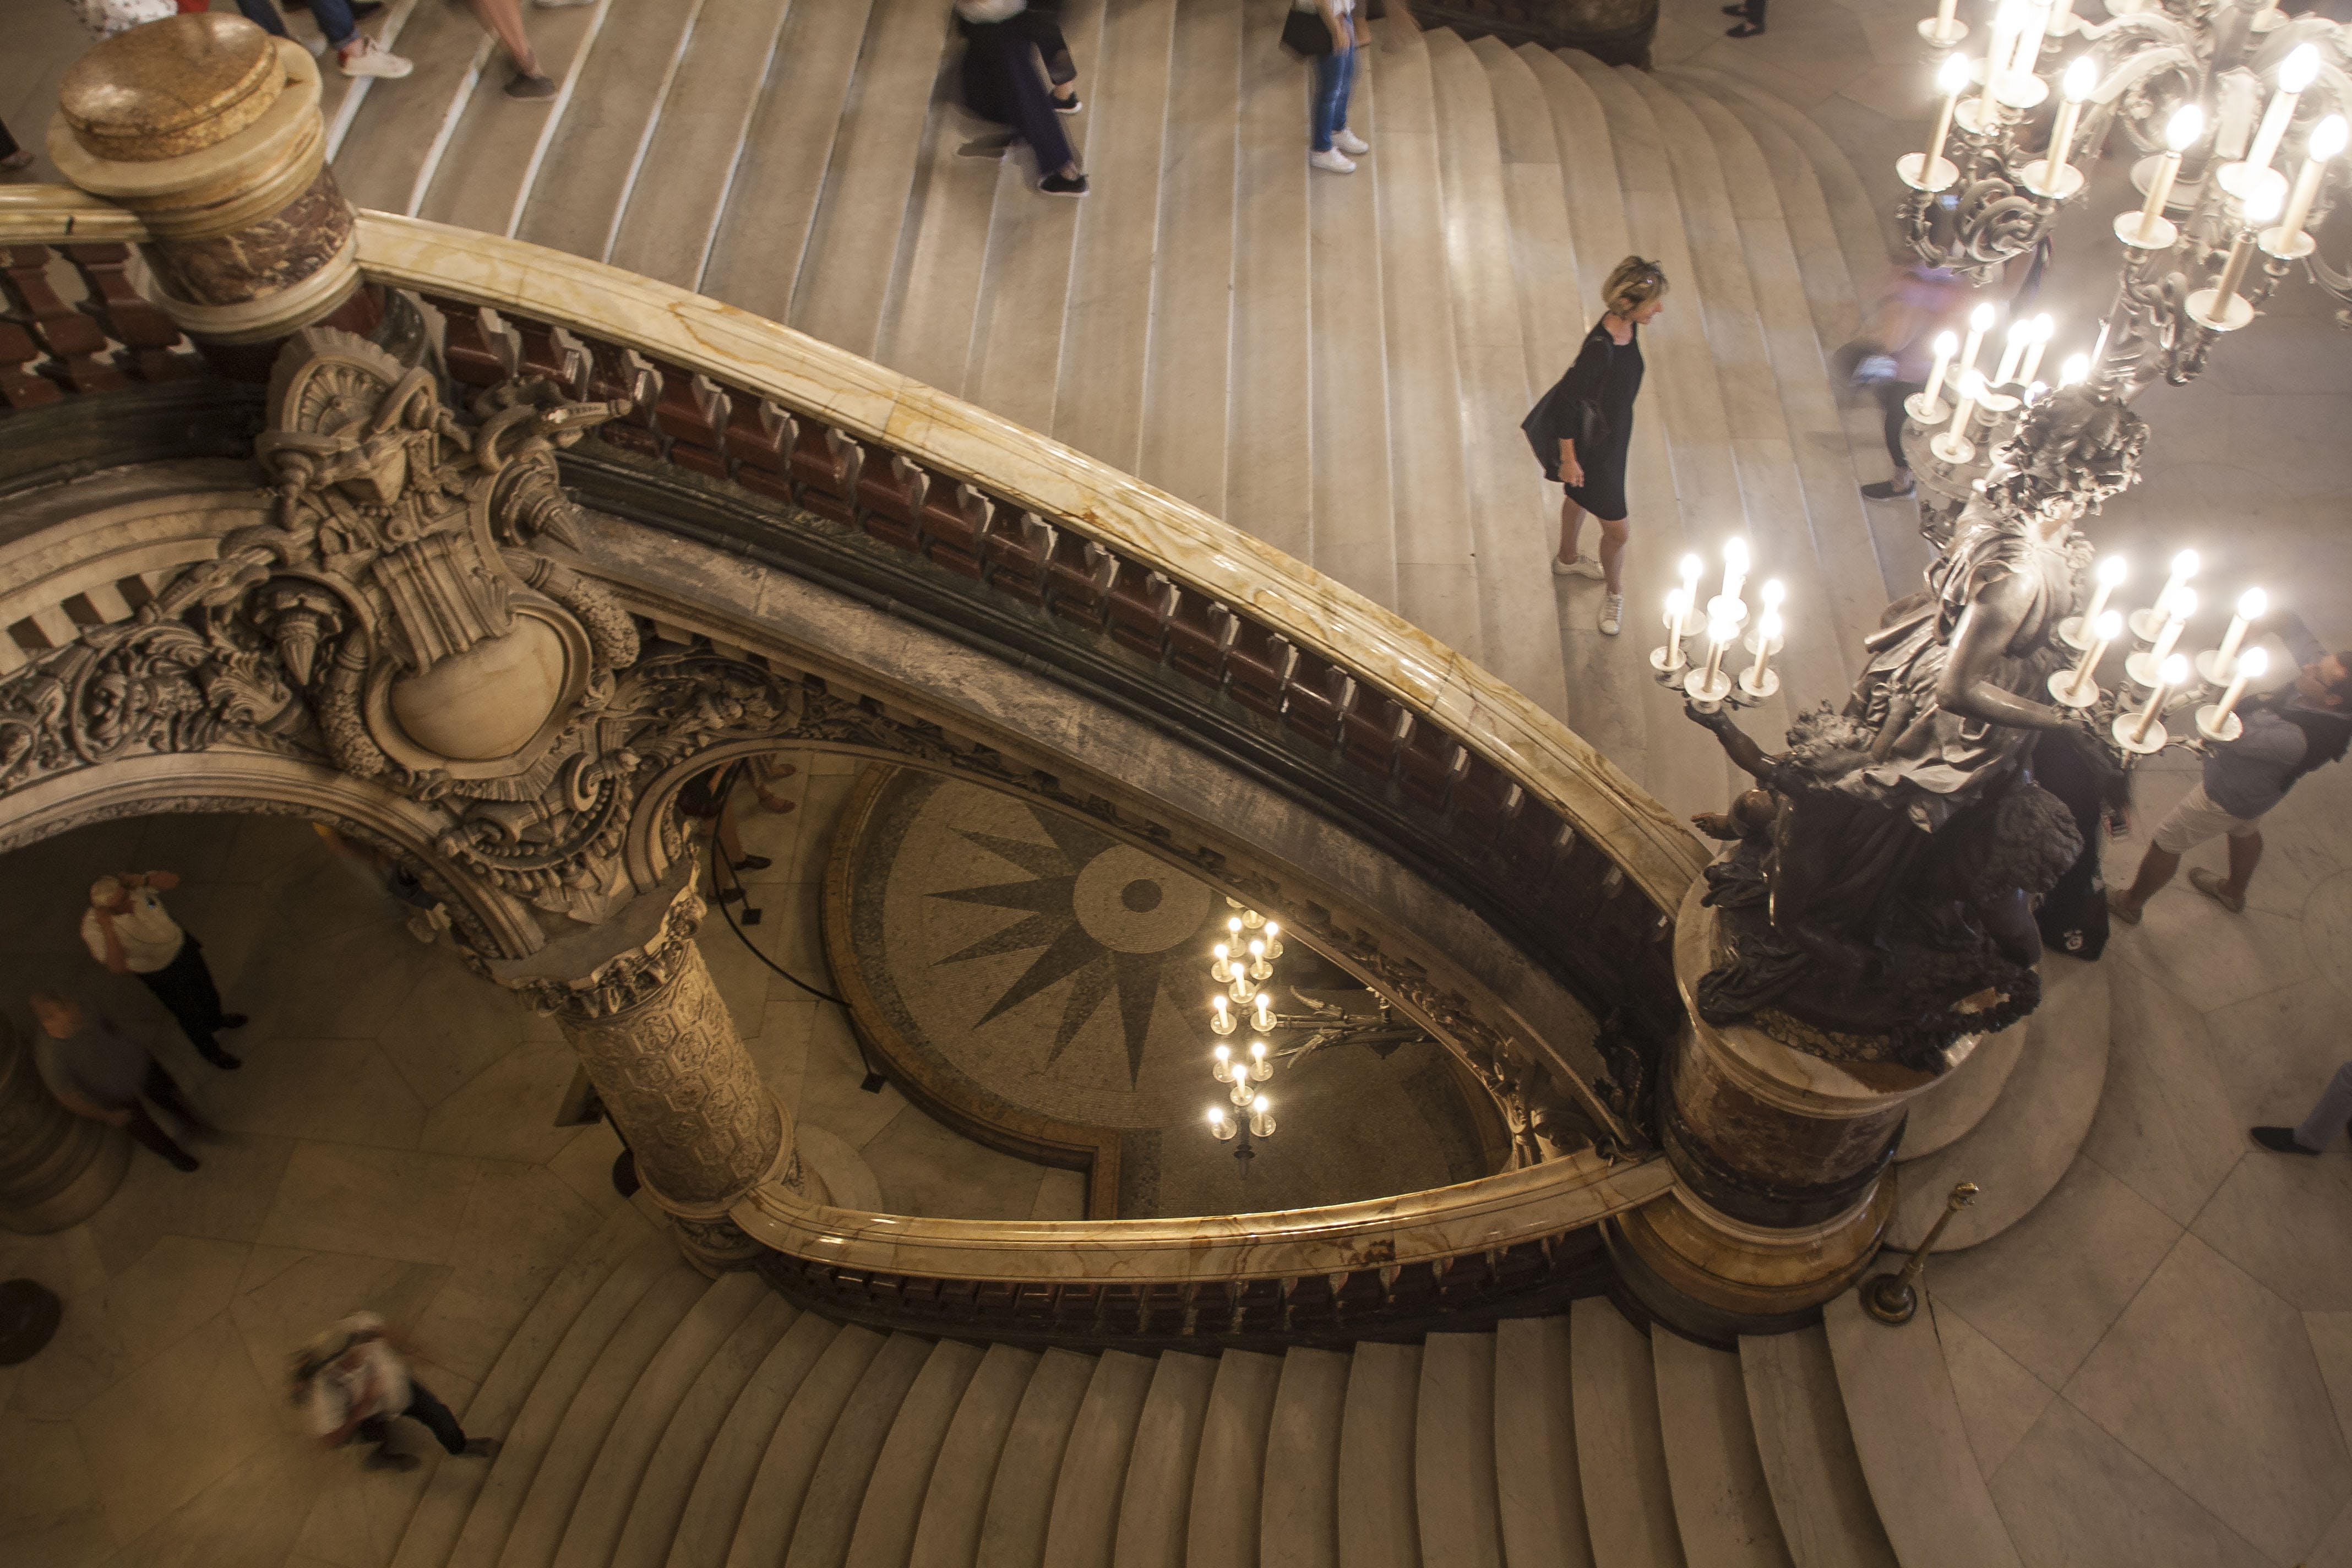 Free stock photo of architecture, Barroque, Candlelights, opera garnier